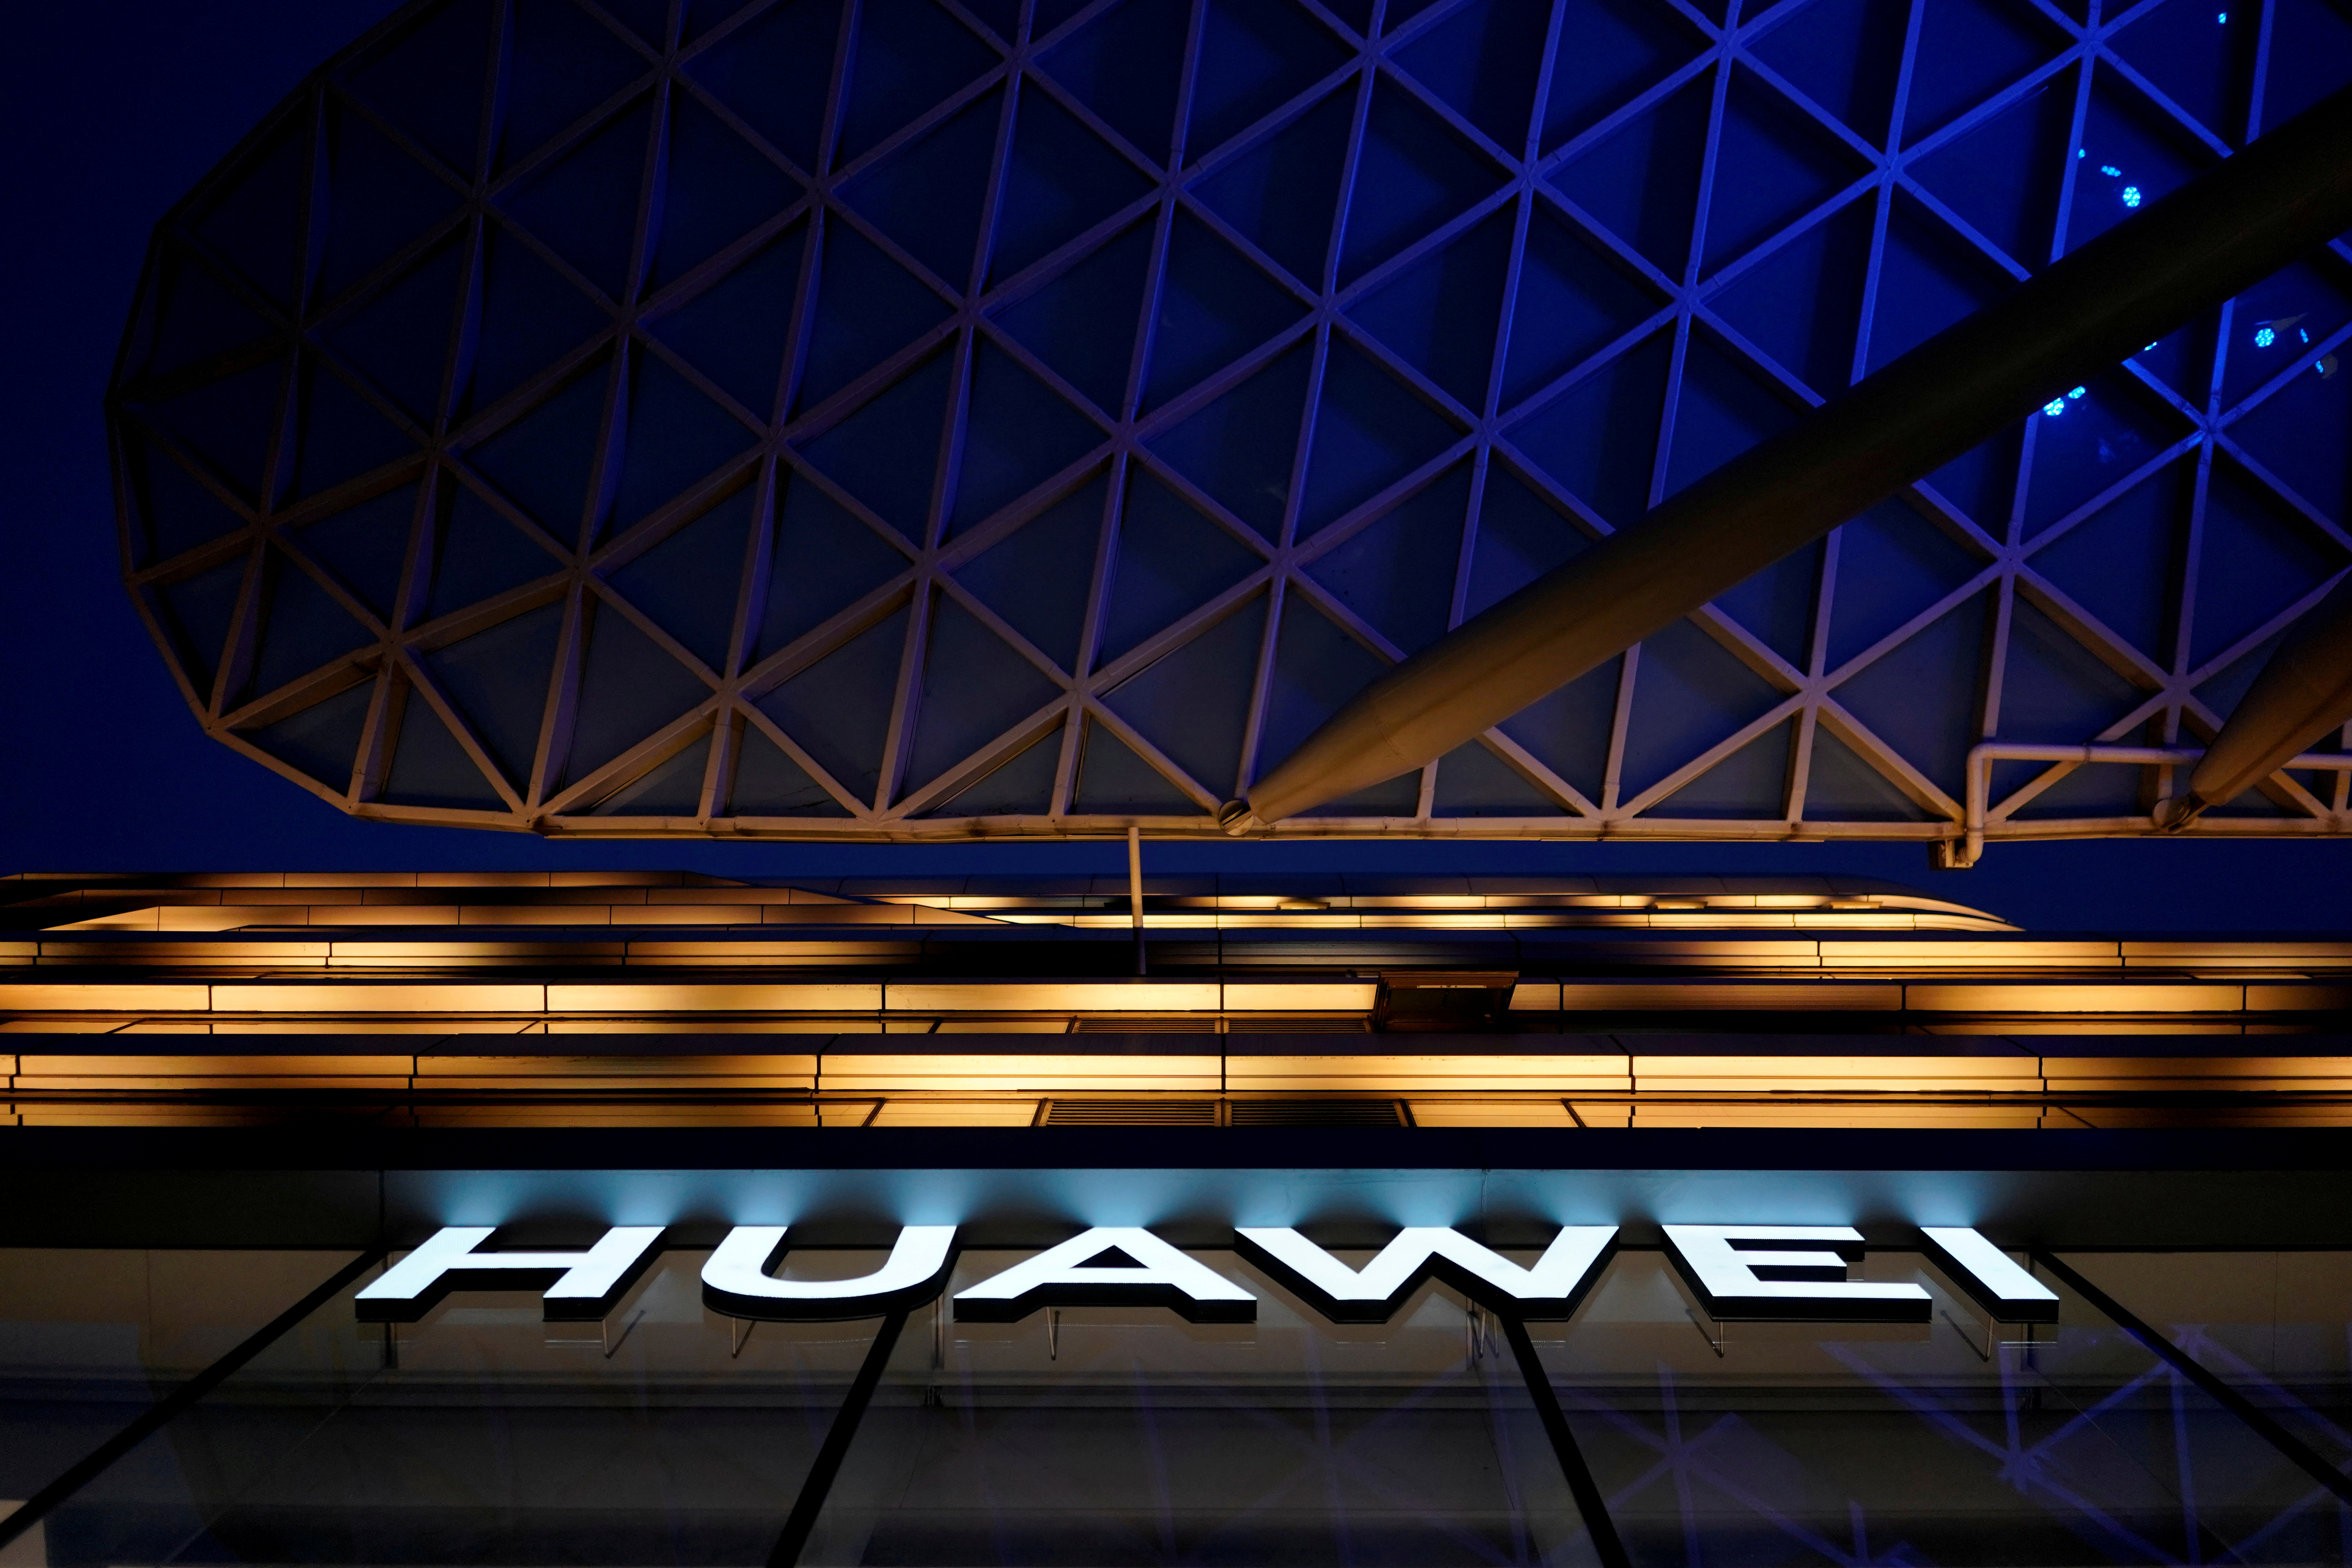 U.S. chipmakers quietly lobby to ease Huawei ban: sources